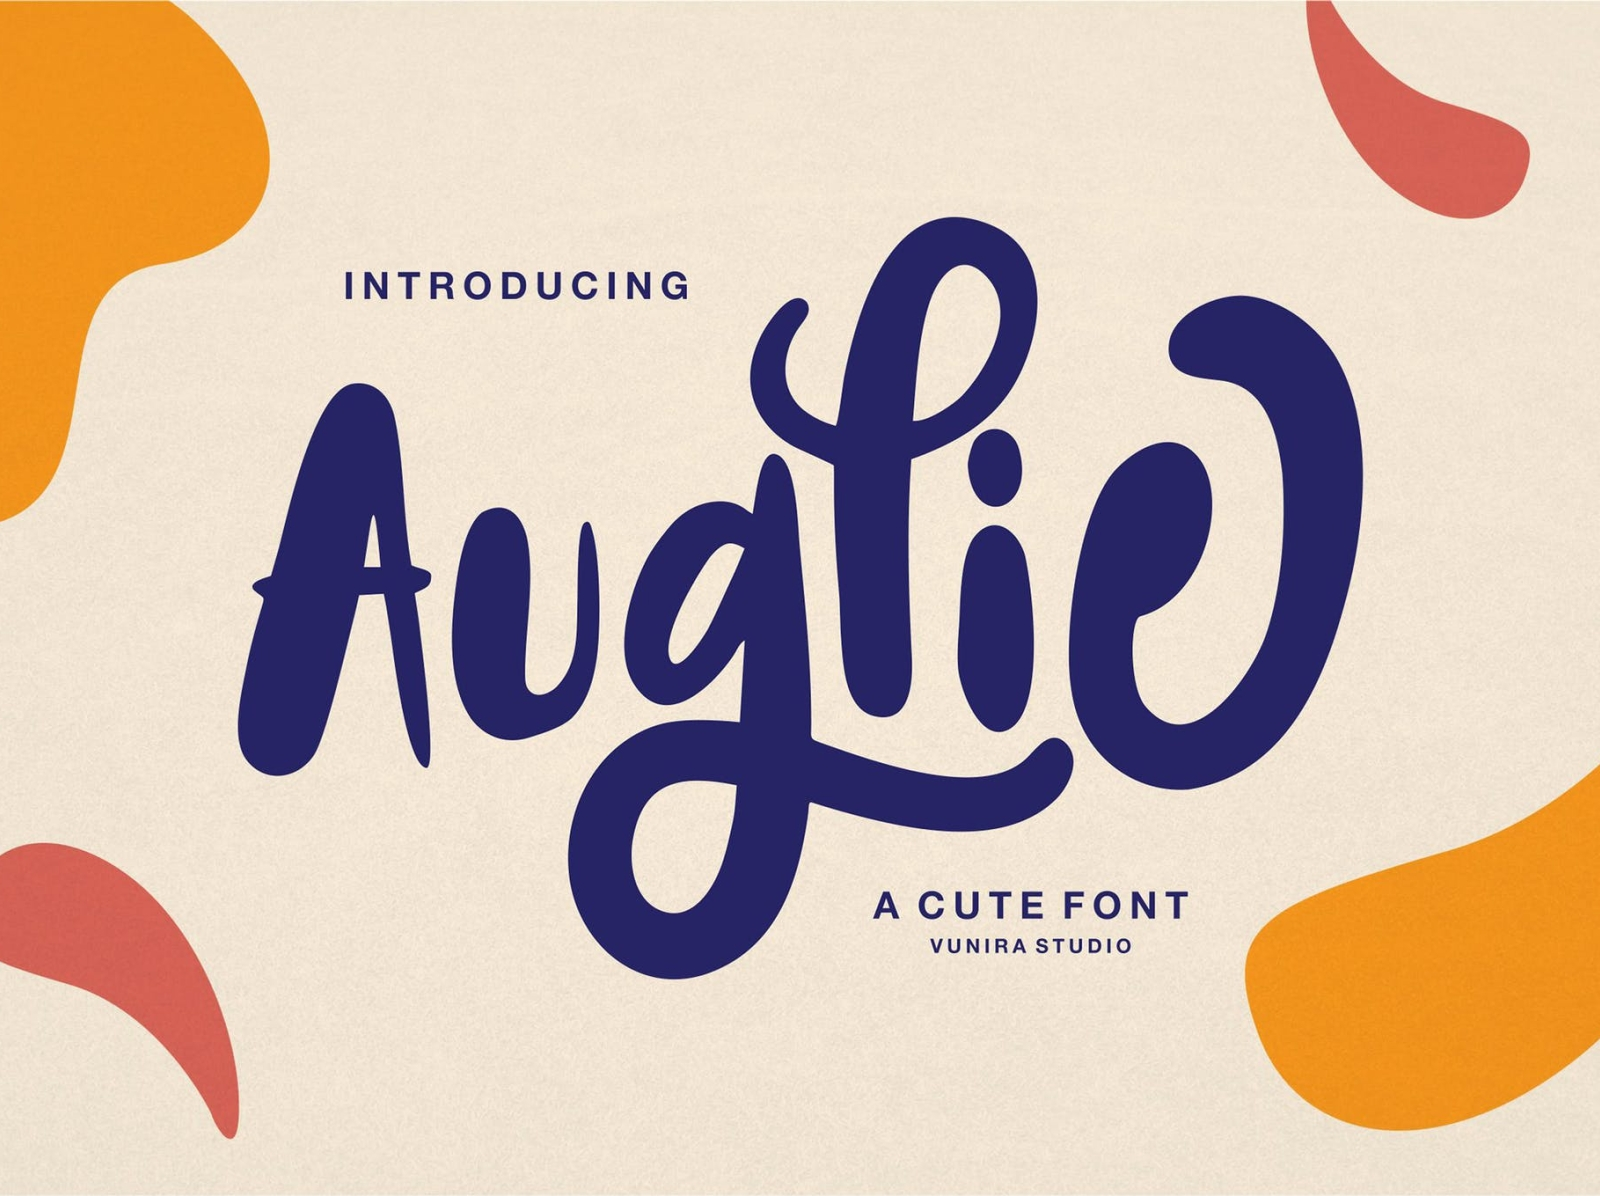 Auglie | A Cute Font vintage typeface display font minimal quotes calligraphy cute font ux ui vector app typography logo graphic design illustration design branding